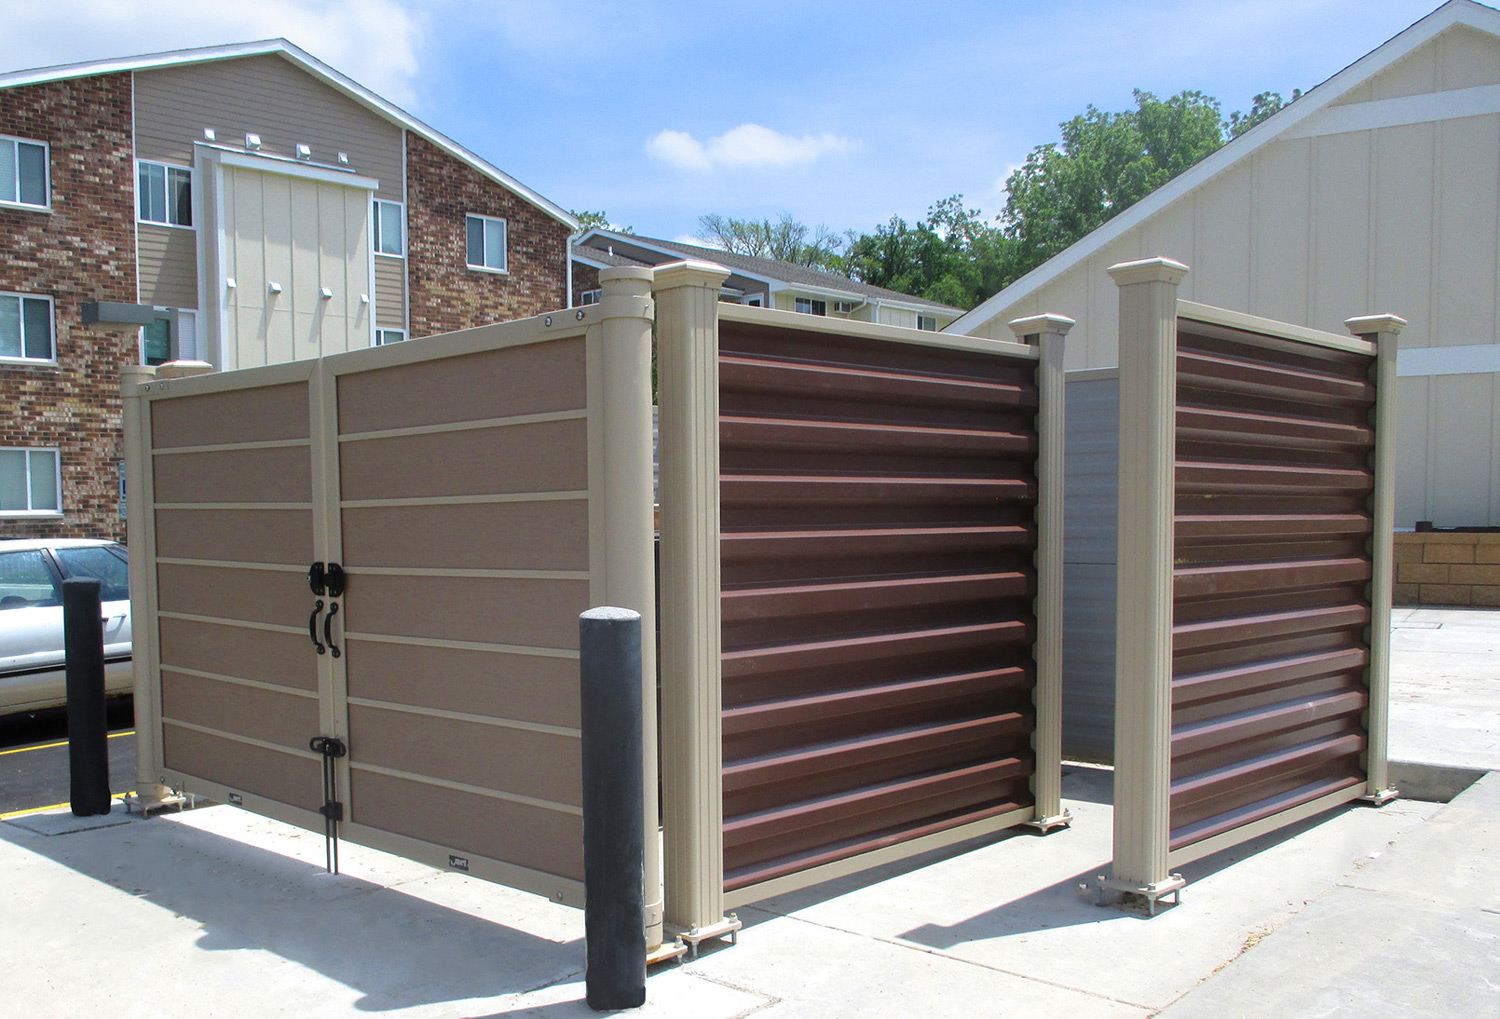 Dumpster Enclosures Installation Boston